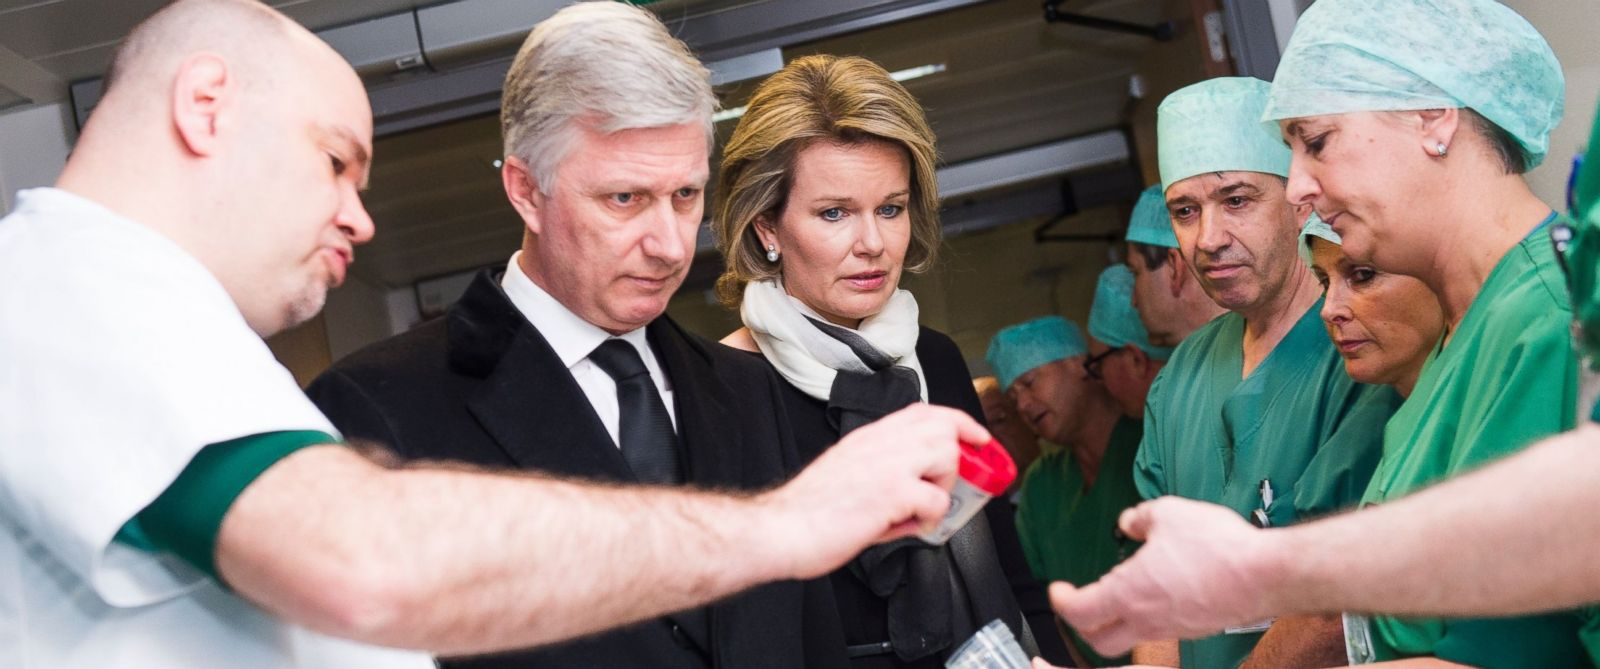 PHOTO: King Philippe and Queen Mathilde of Belgium look at fragments of iron shrapnel from a nail bomb at the Campus Gasthuisberg UZ hospital in Leuven, outside Brussels, March 24, 2016.